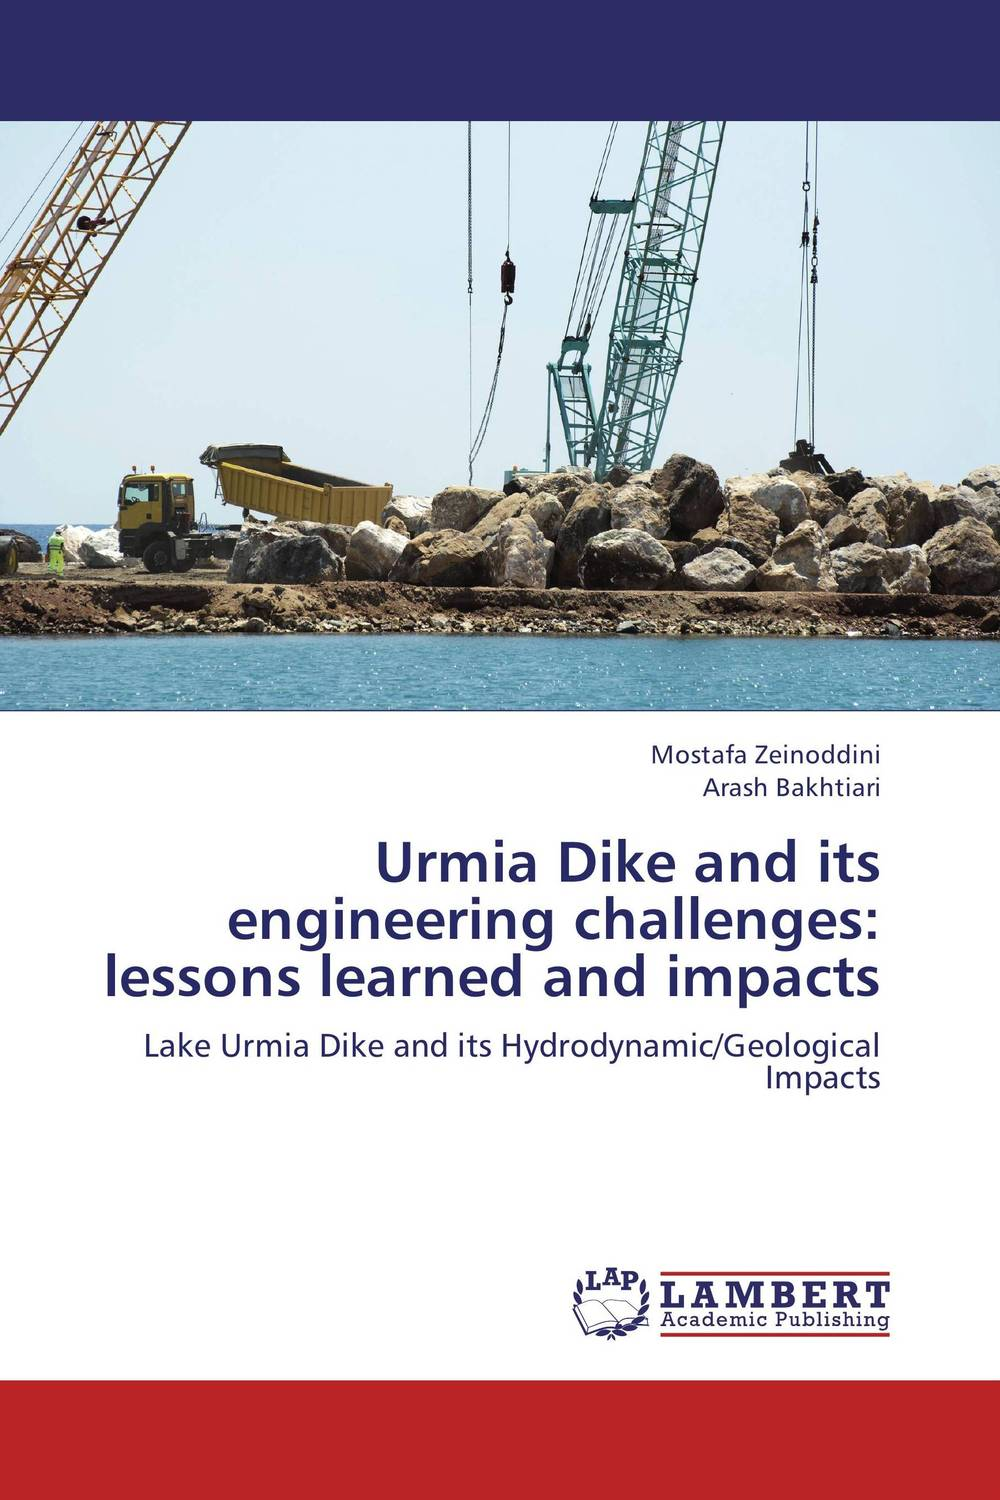 Urmia Dike and its engineering challenges: lessons learned and impacts globalization its challenges on democracy and effects on africa